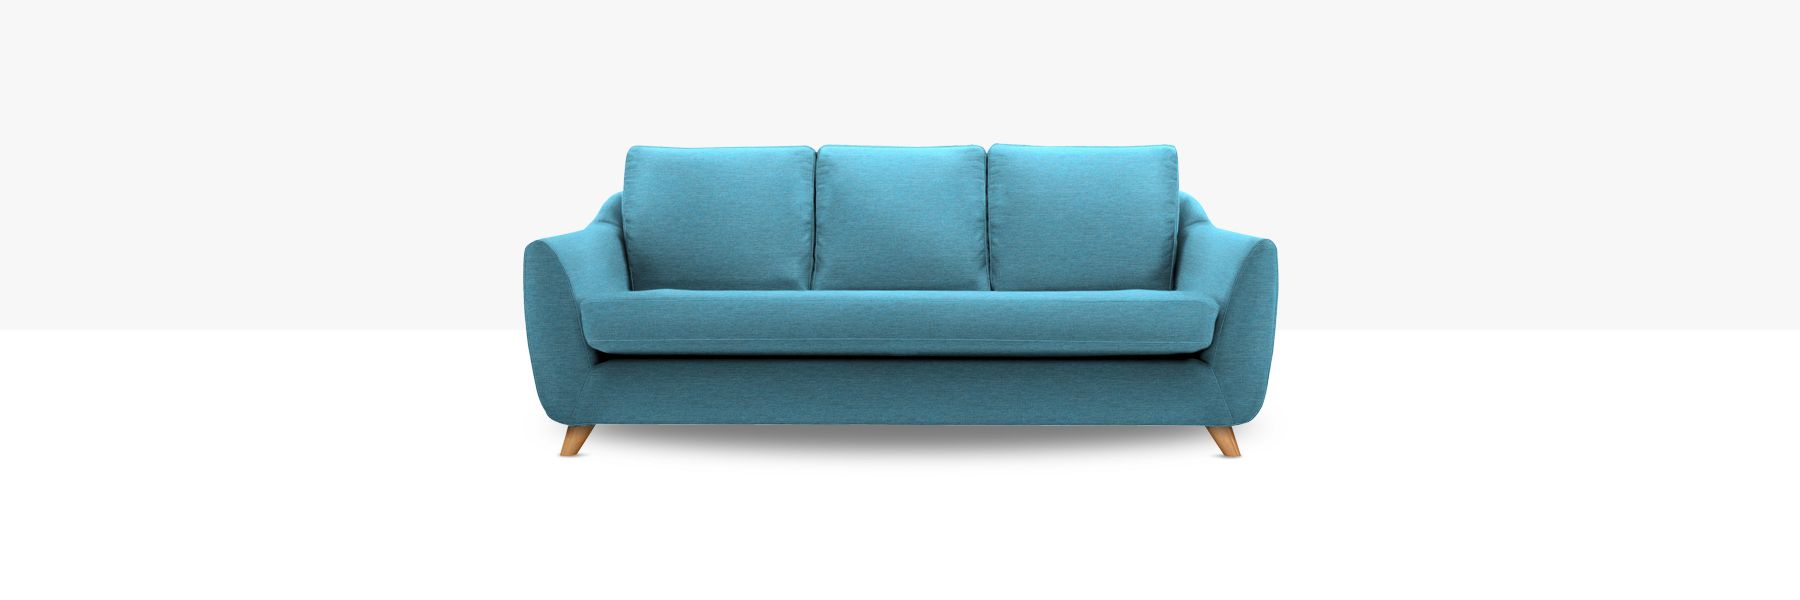 chesterfield style sofas are available at john lewis